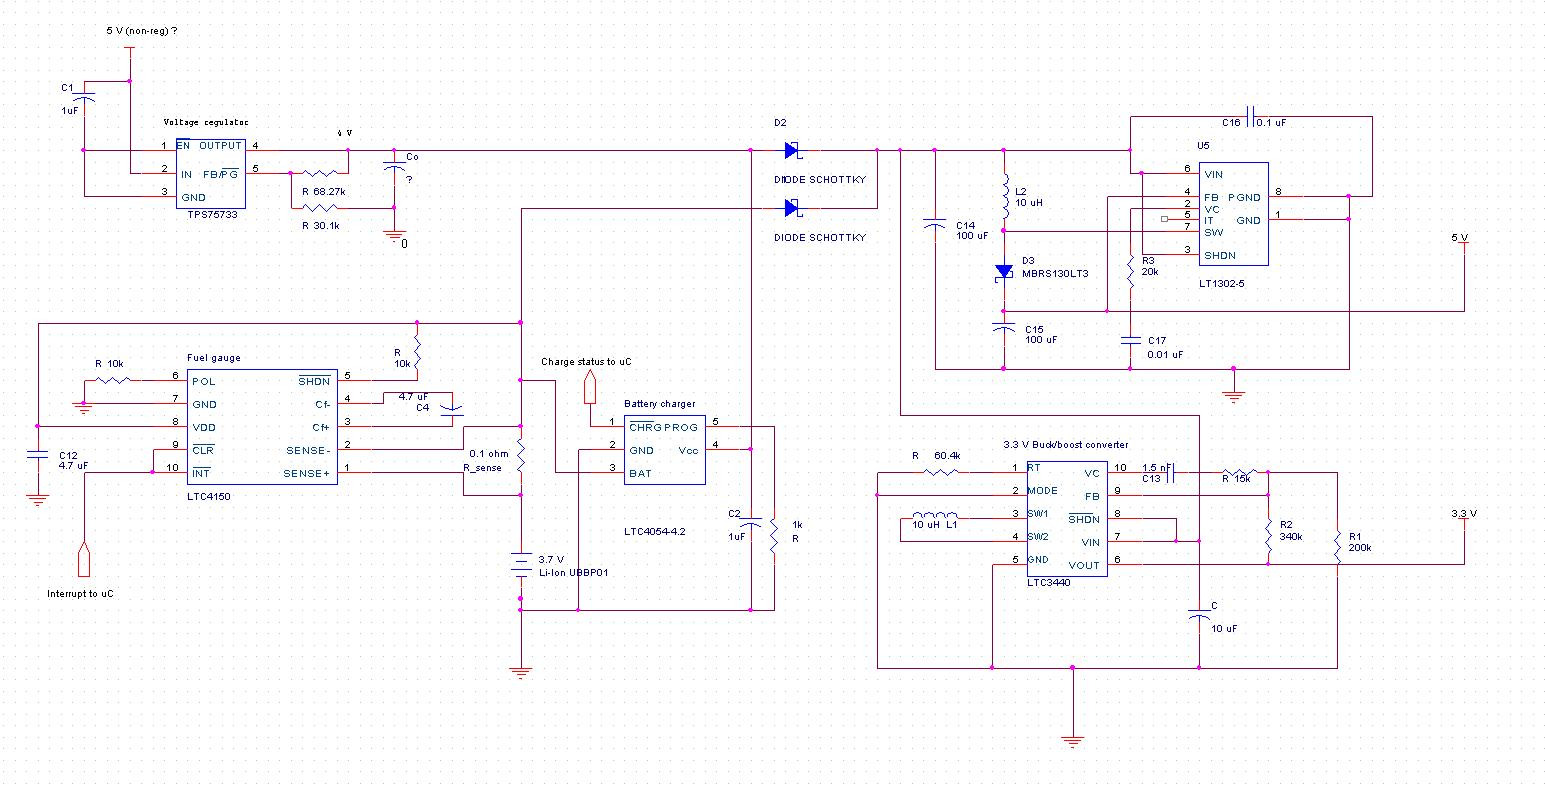 Madalina Vintilas Lab Notebook High Current 5 Volt Regulator Electrical Engineering Stack Exchange Power Management Part Of The Schematic Has Reached As Tonight Some Resistor And Or Capacitor Values Might Need To Be Changed But Theoretically